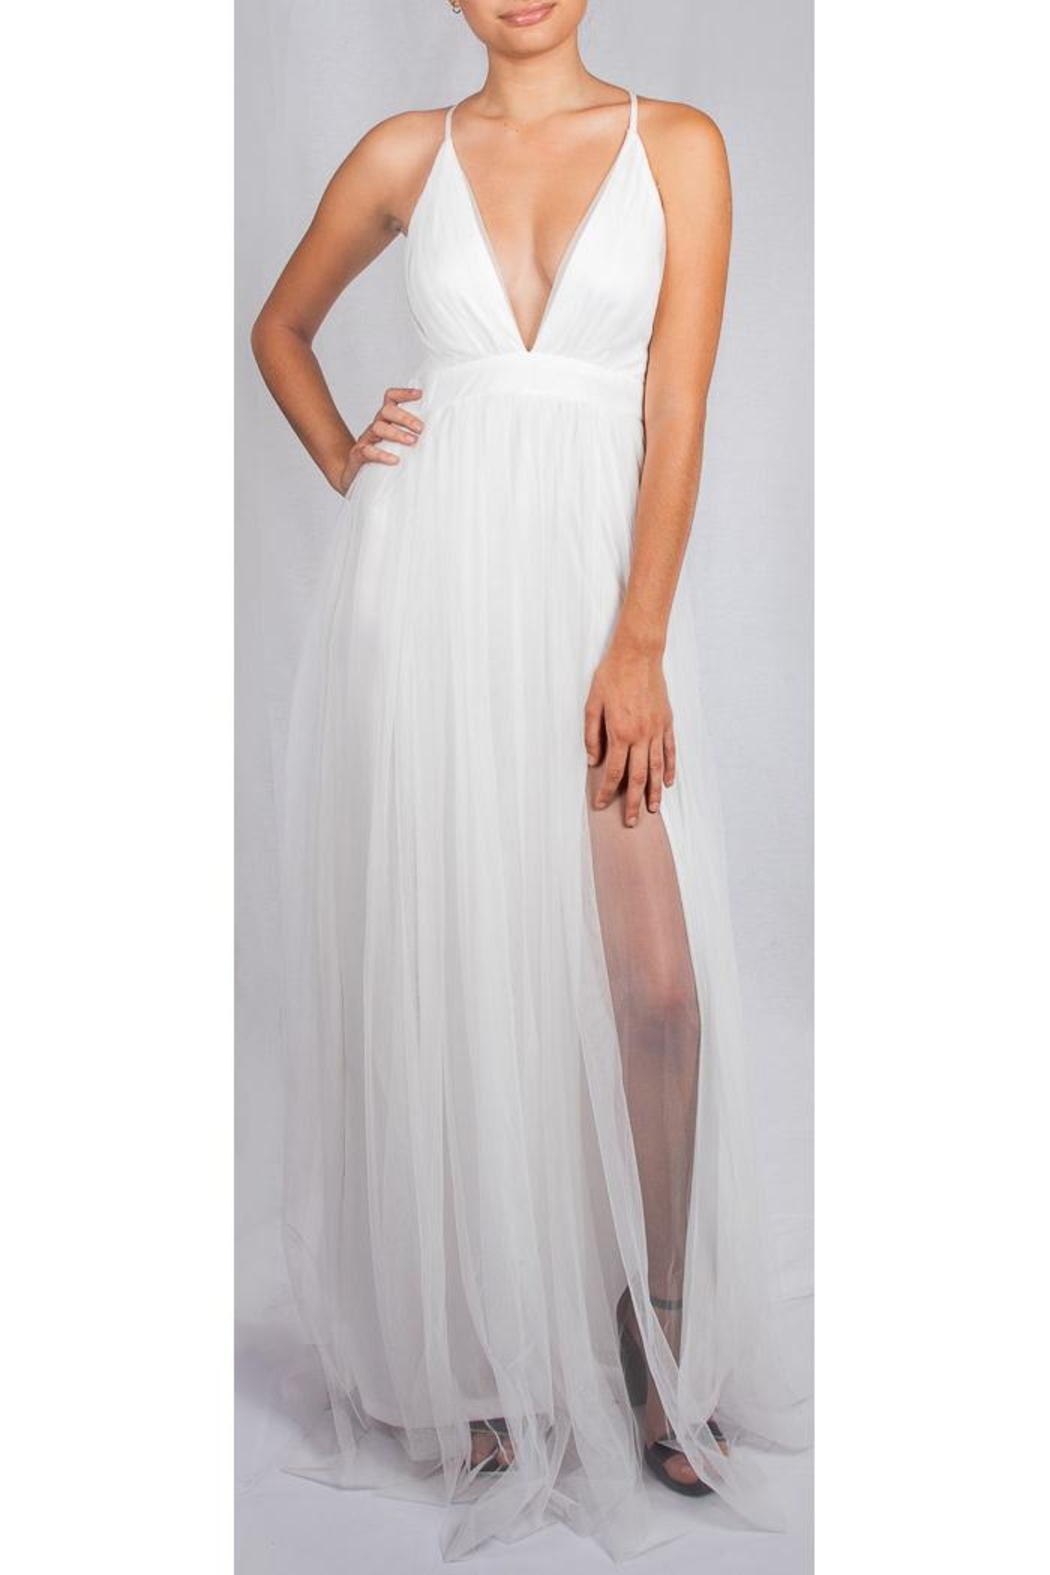 luxxel White Enchantress Gown - Front Cropped Image